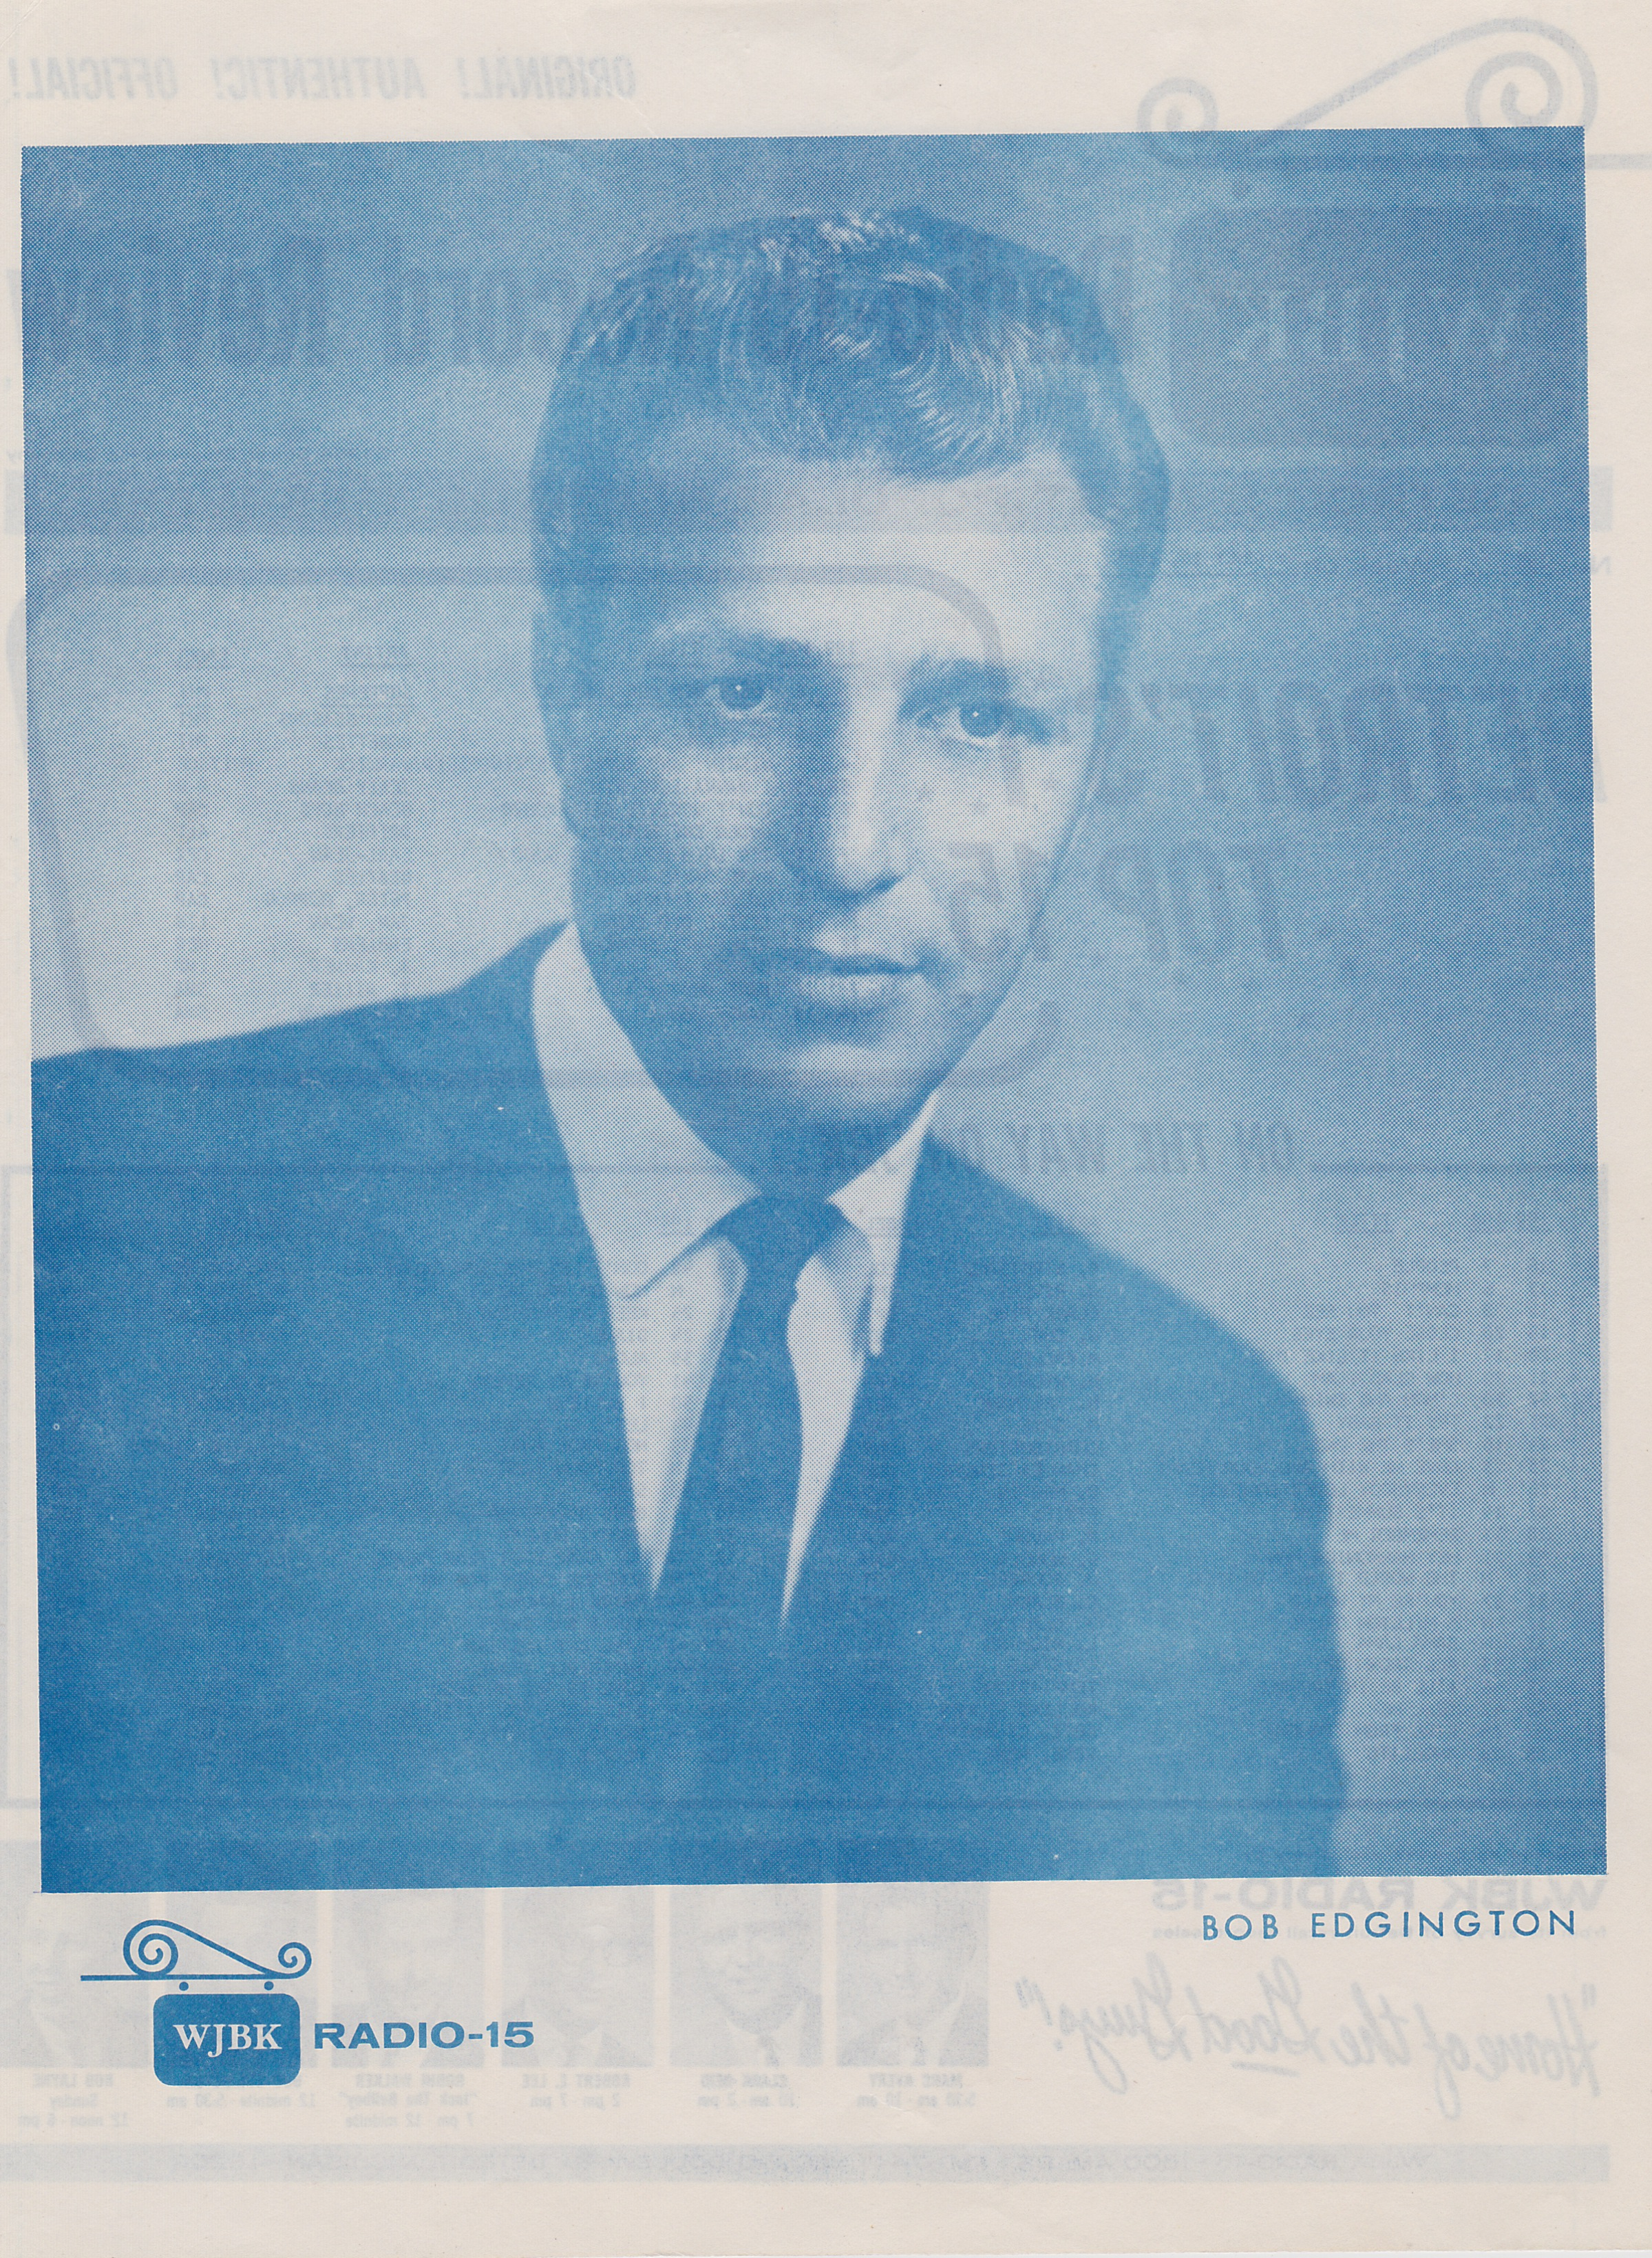 WJBK - BOB EDGINGTON - BACK JULY 10, 1964